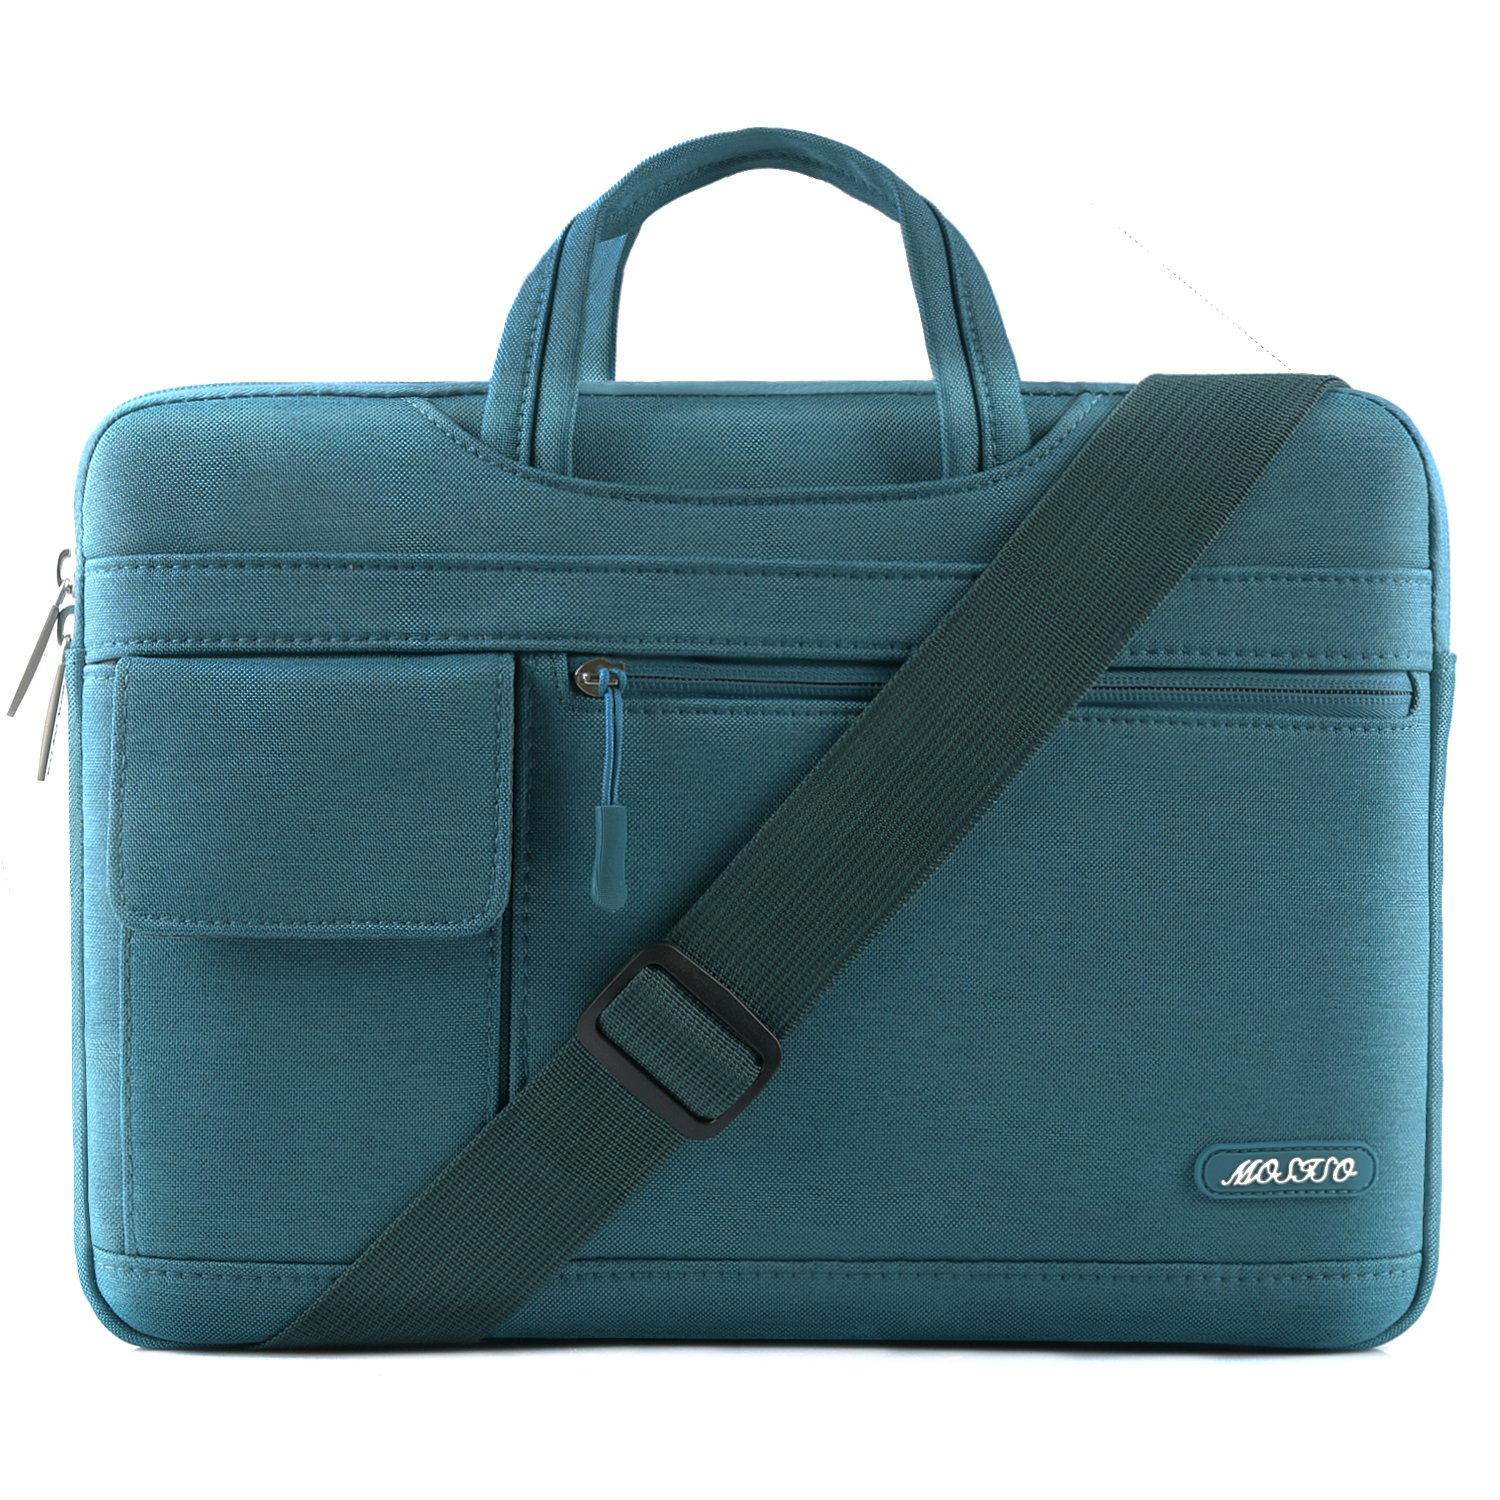 MOSISO Laptop Shoulder Bag Compatible 15-15.6 Inch New MacBook Pro with Touch Bar A1990 & A1707 2018 2017 2016, MacBook Pro, Also Fit 14 Inch Ultrabook, Polyester Flapover Briefcase Sleeve, Deep Teal